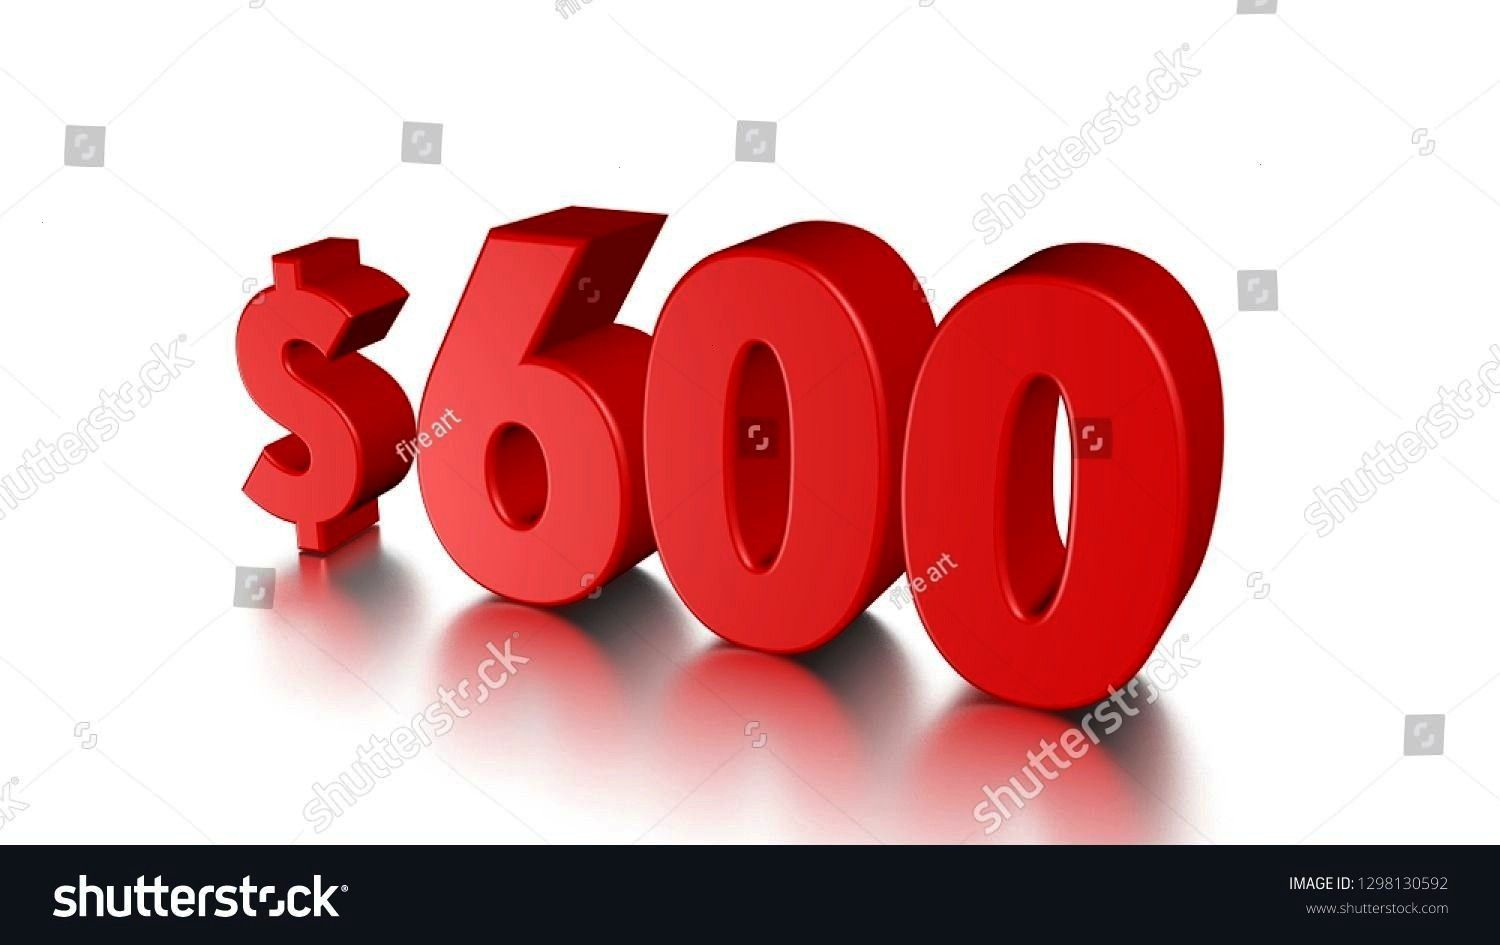 hundred price symbol red text number 3d render with dollar sign on white background 600 six hundred price symbol red text number 3d render with dollar sign on white backg...